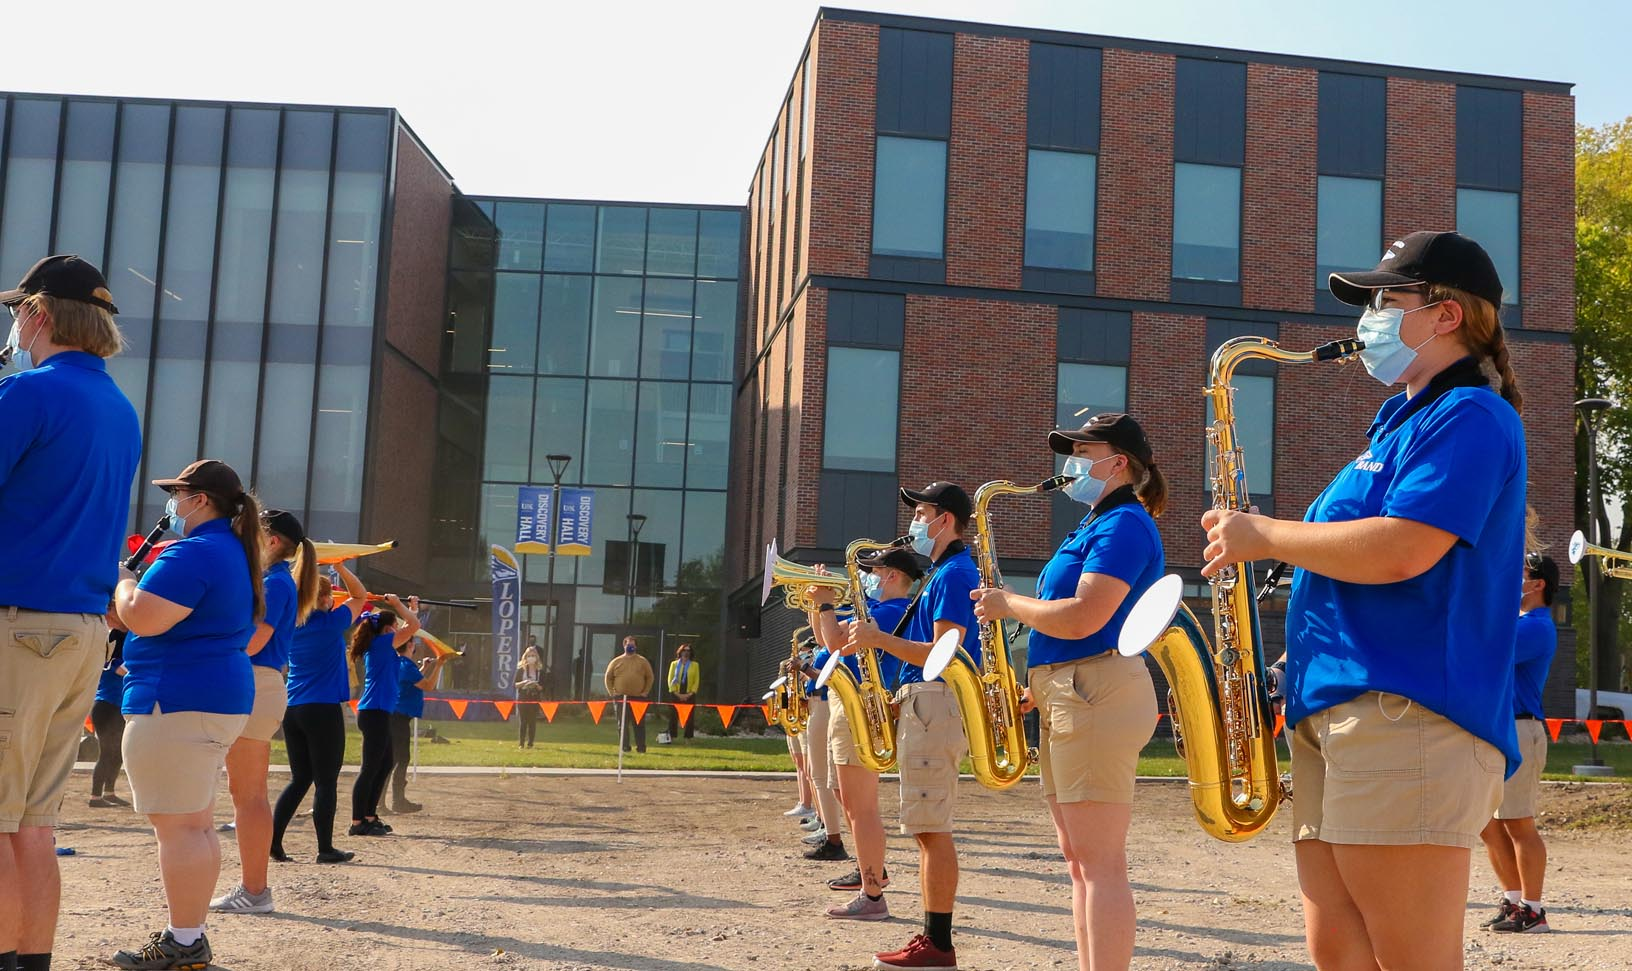 UNK's Pride of the Plains Marching Band performs Monday during a ribbon-cutting ceremony celebrating the grand opening of Discovery Hall. The event kicked off homecoming week on campus.